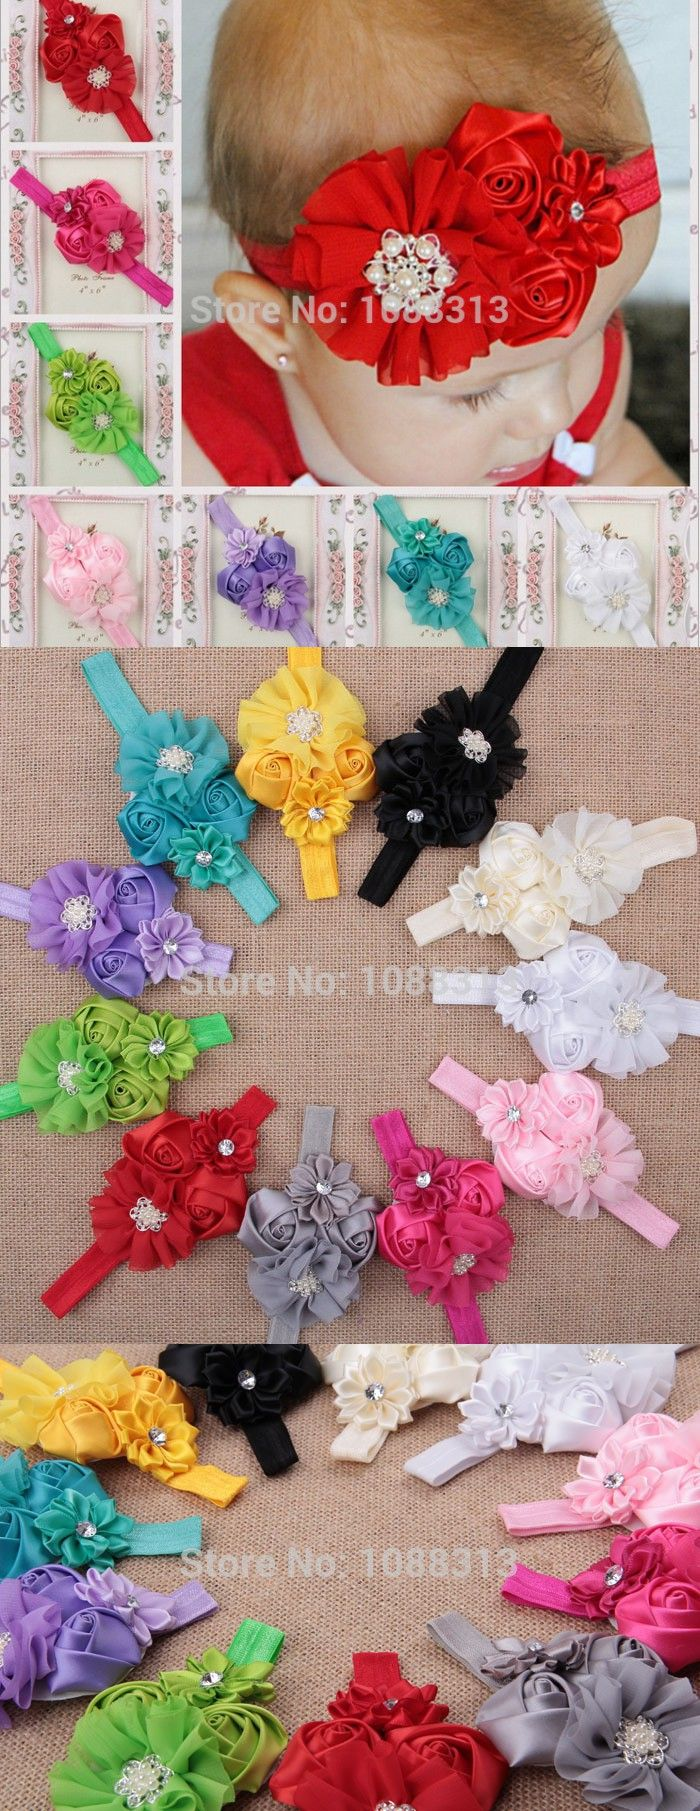 Chiffon satin ribbon rolled rose rhinestone pearl button flower decoration elastic baby headband.10pcs mix summer kids headwear.